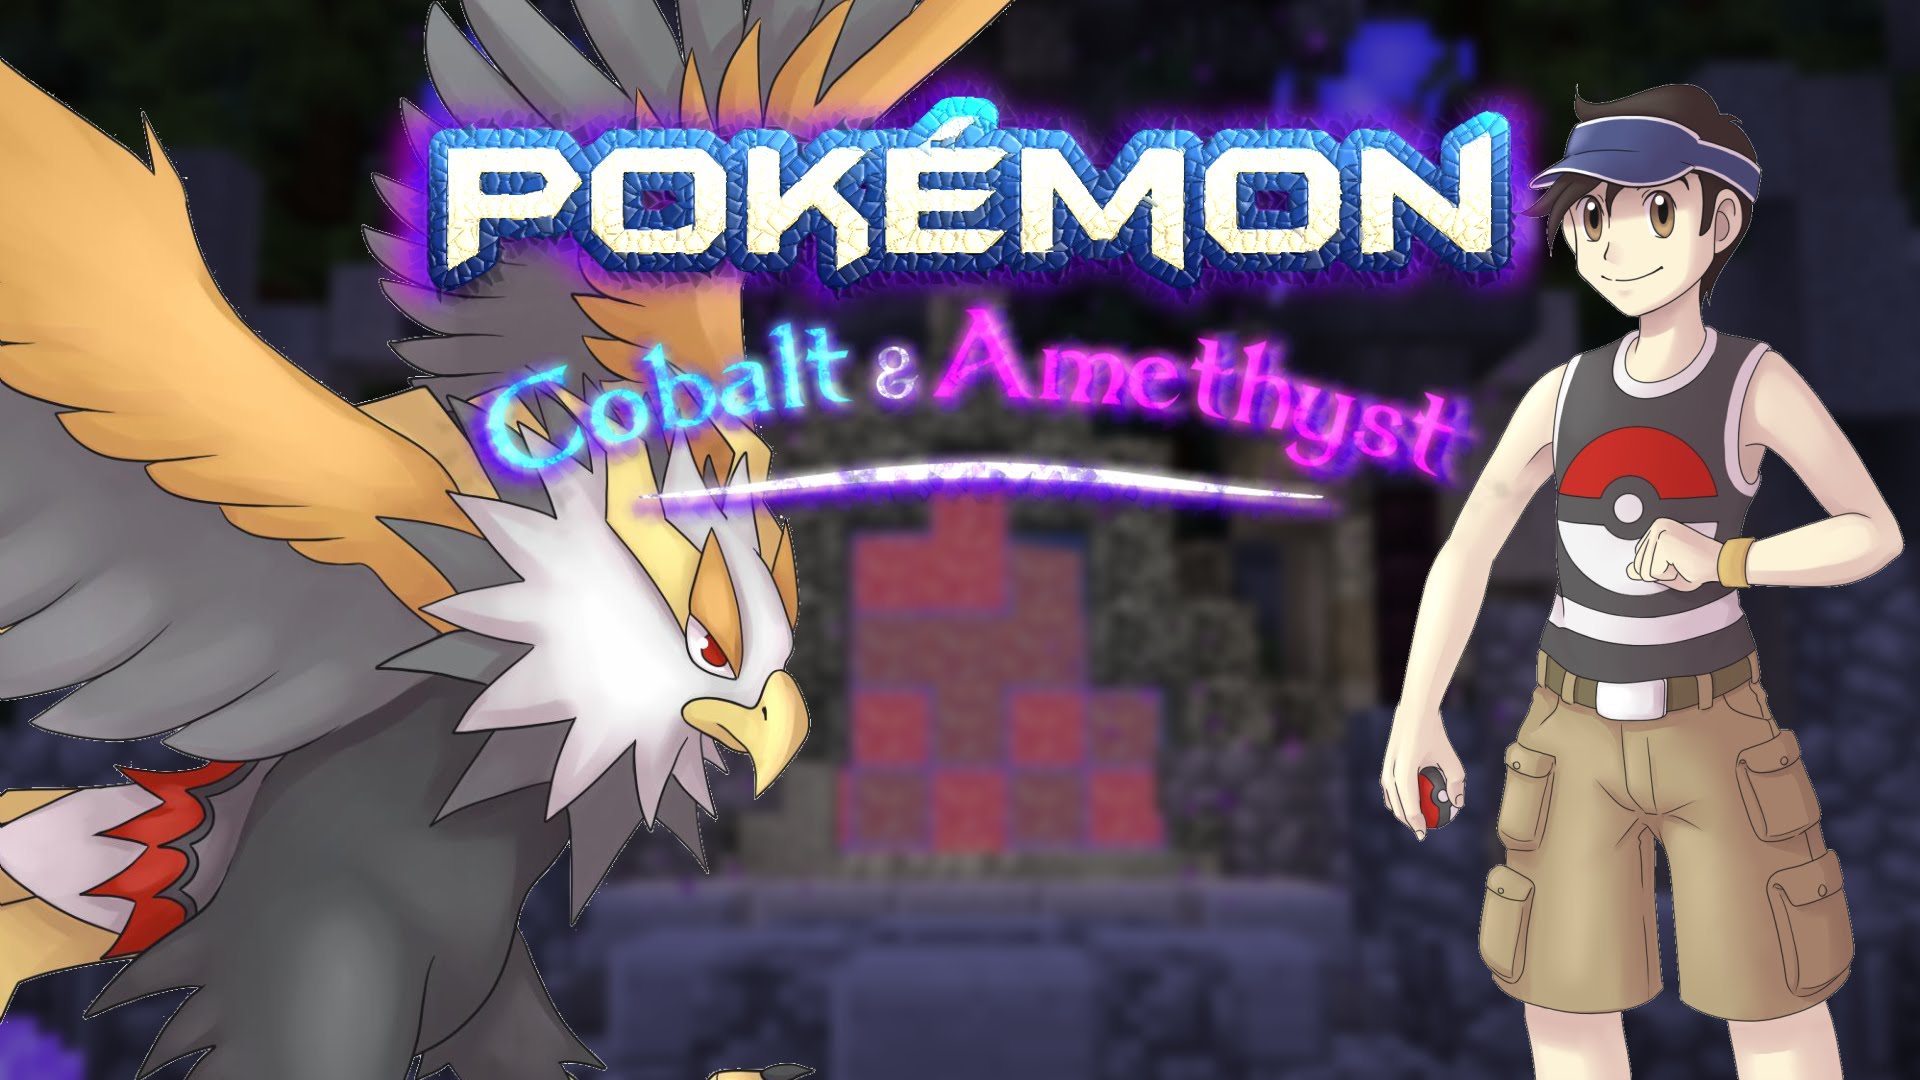 Playing Pokémon in Minecraft - Pokemon Cobalt and Amethyst |